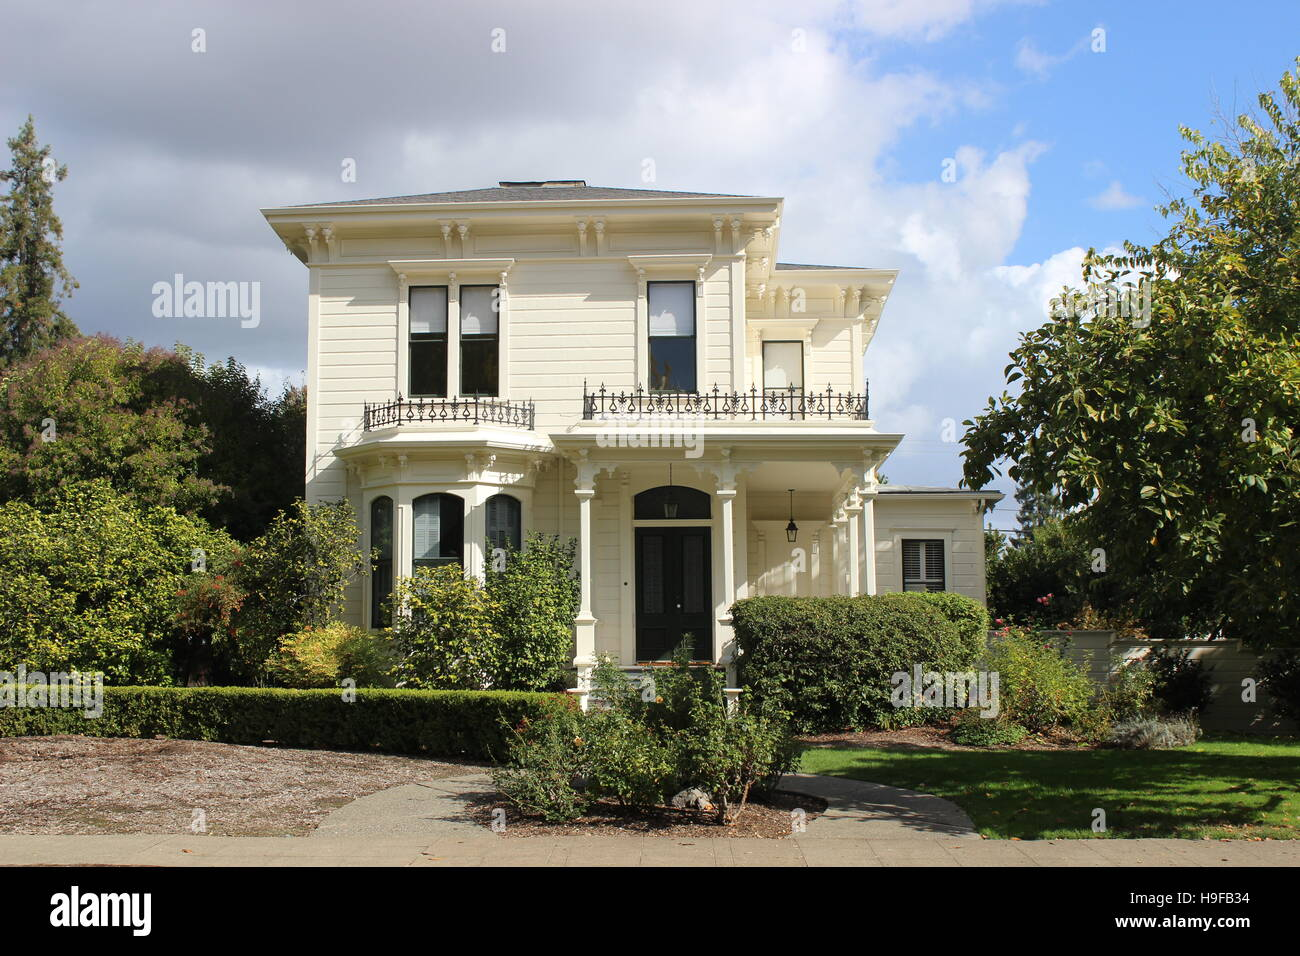 Ombre d'un doute, l'Italienne Maison, Santa Rosa, Californie Photo Stock